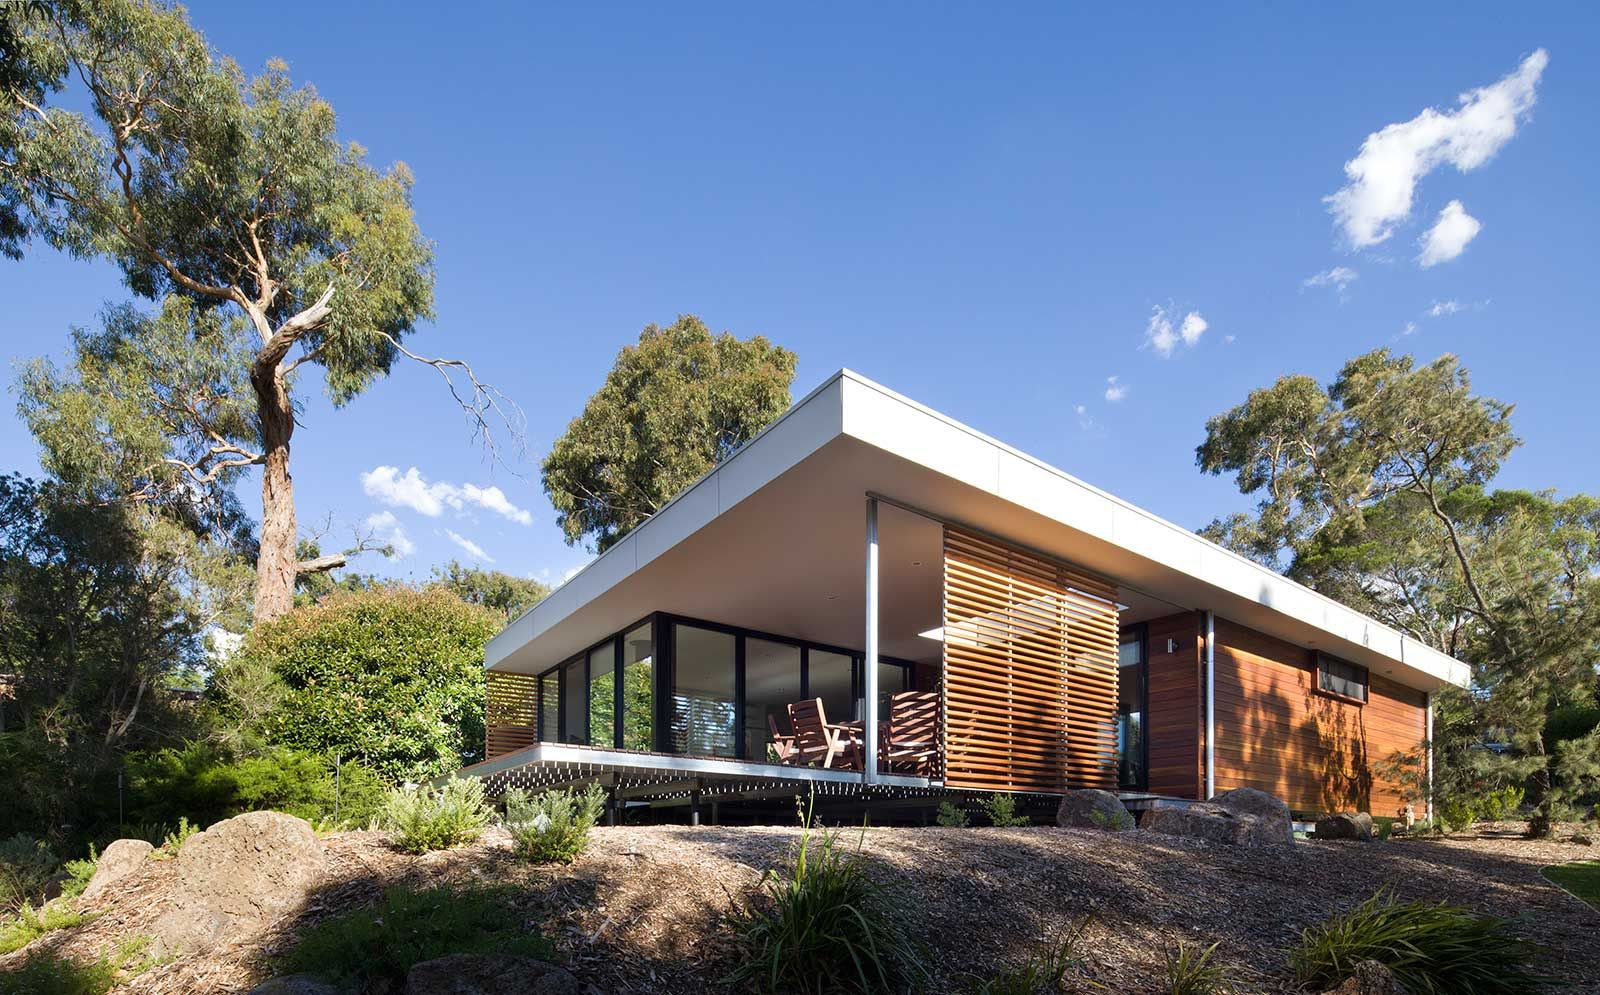 Prebuilt Residential  Australian prefab homes, factory-built, modular and  sustainable. |